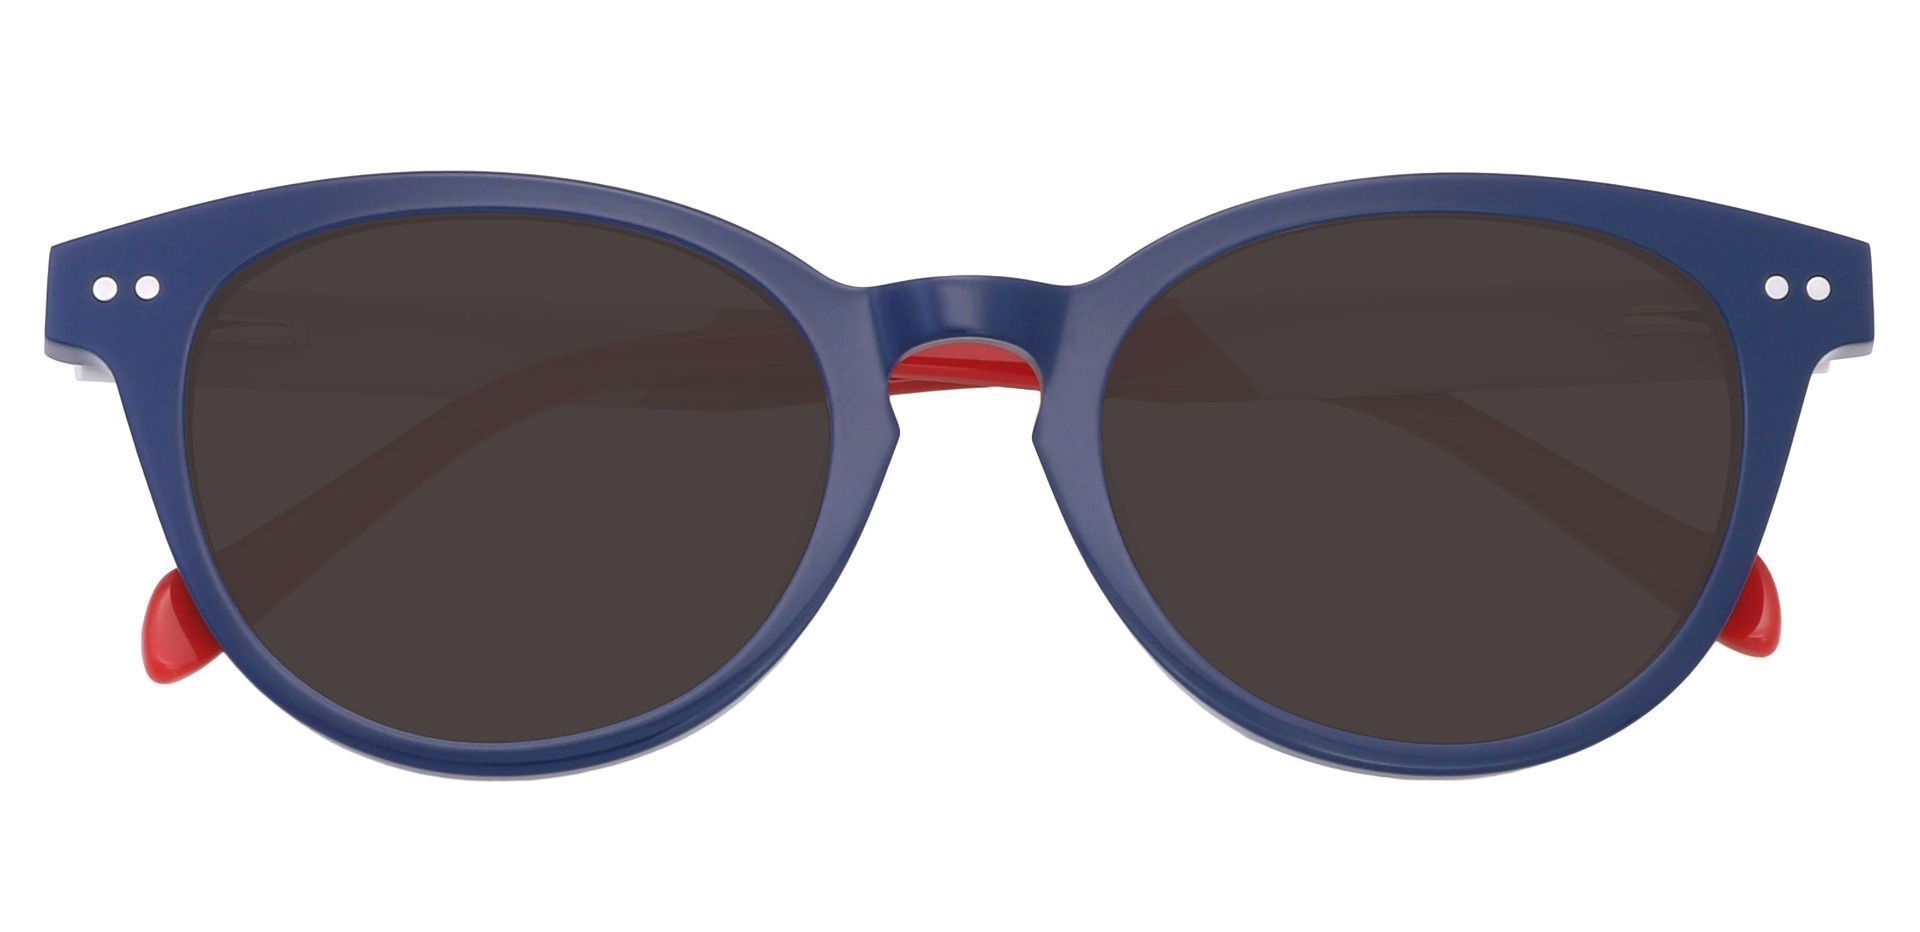 Common Oval Non-Rx Sunglasses - Blue Frame With Gray Lenses